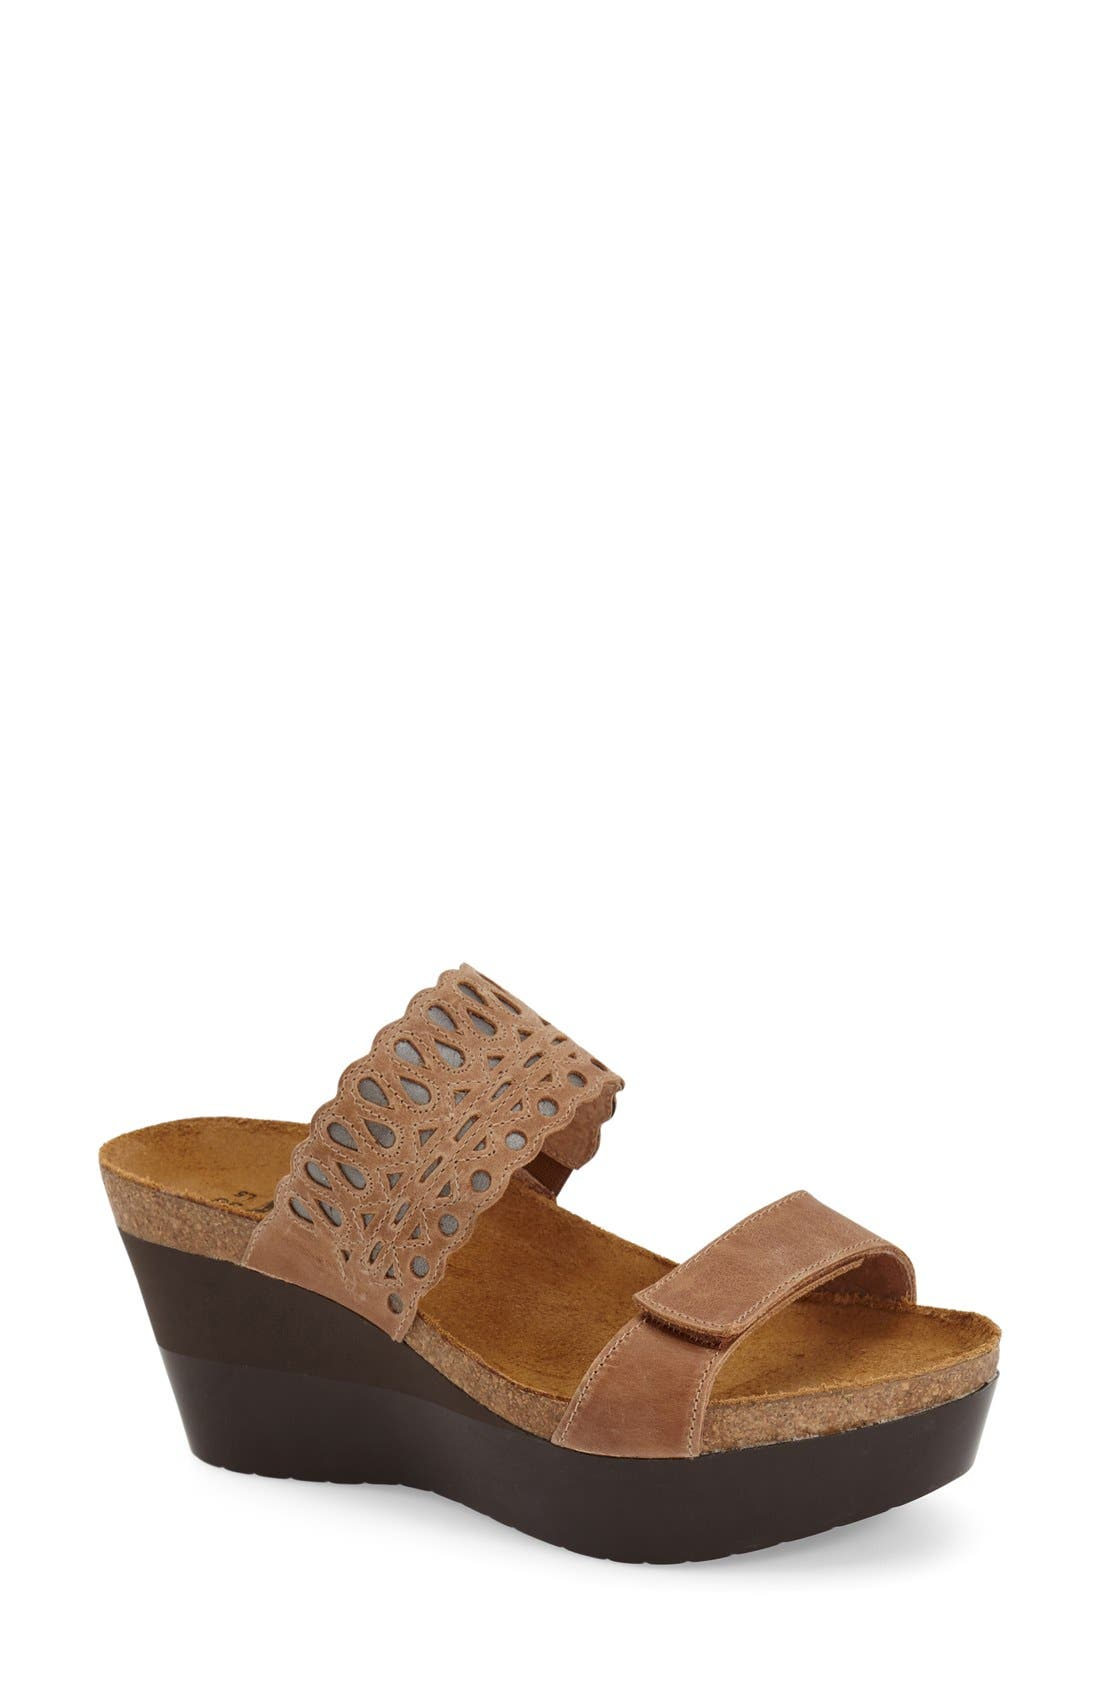 'Rise' Platform Wedge Sandal,                         Main,                         color, LATTE BROWN LEATHER